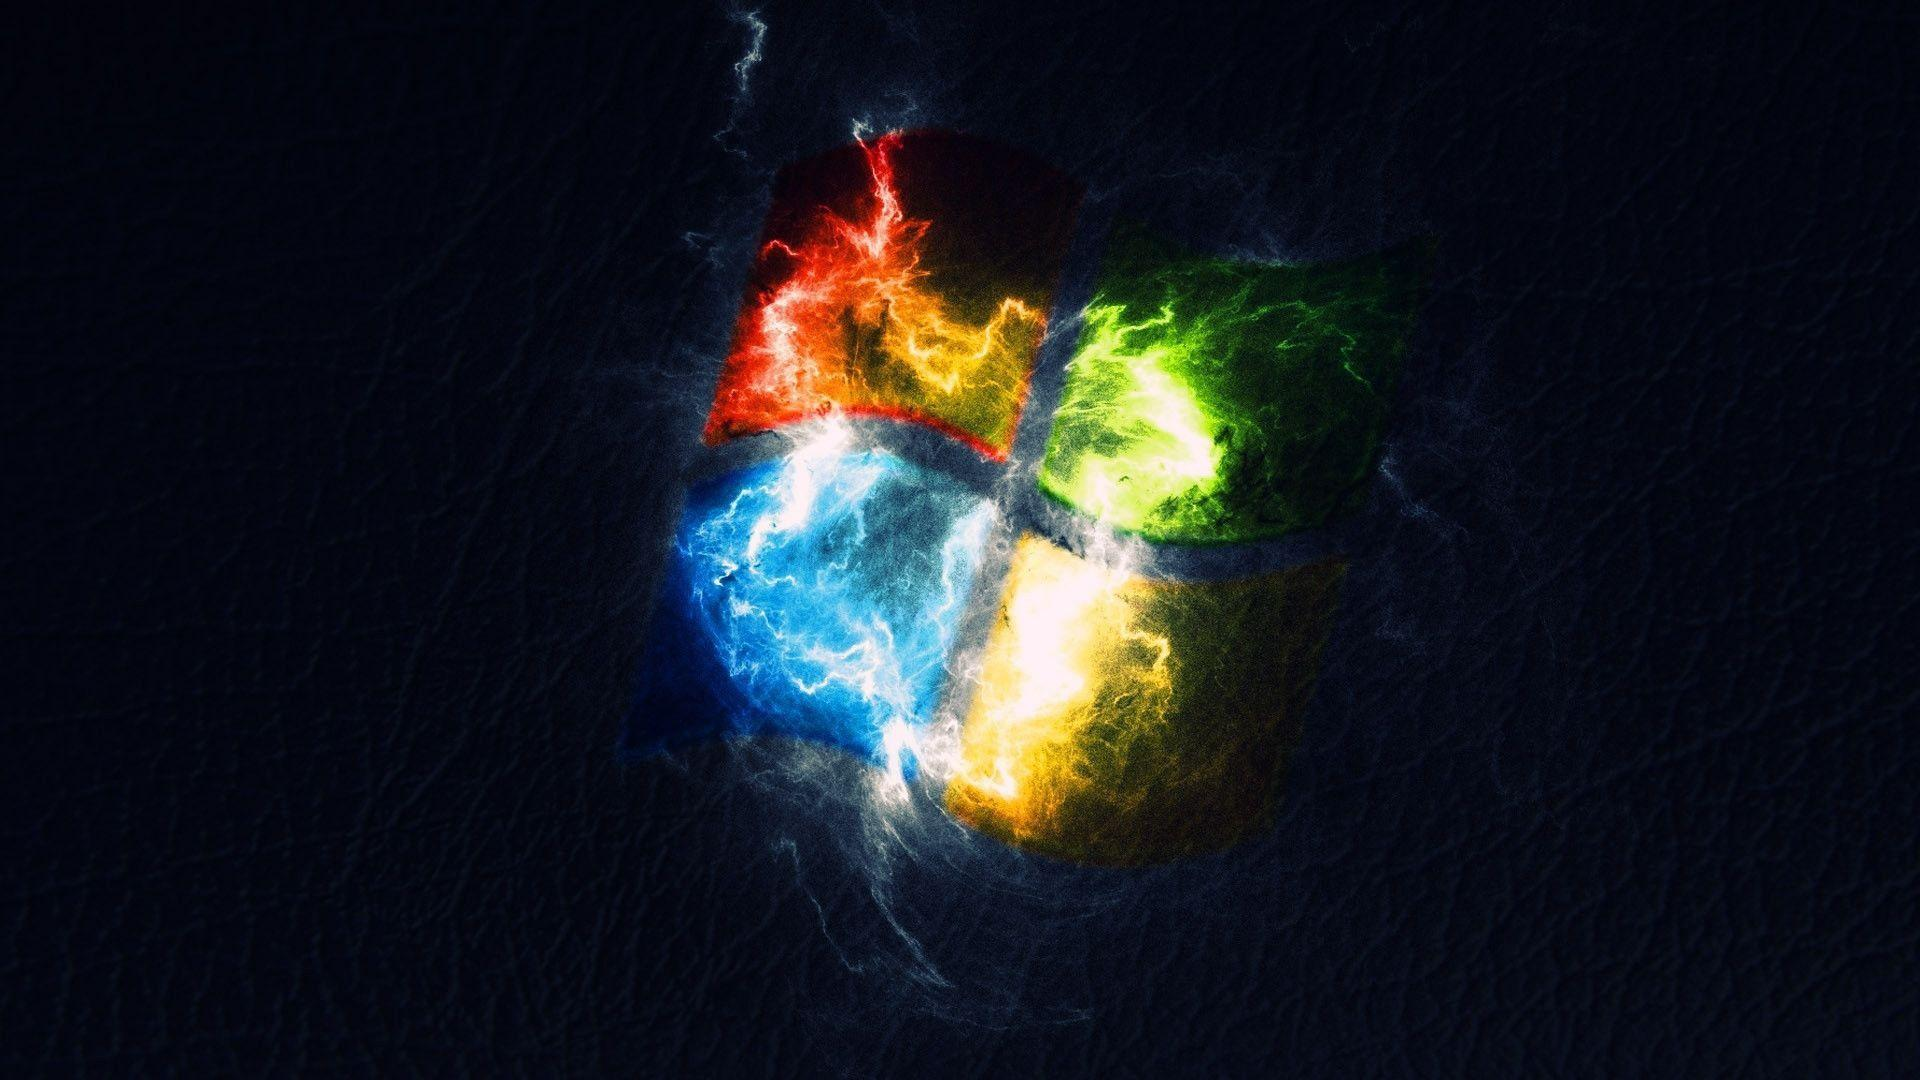 Abstract Hd Wallpapers 1080p  Wallpaper Cave